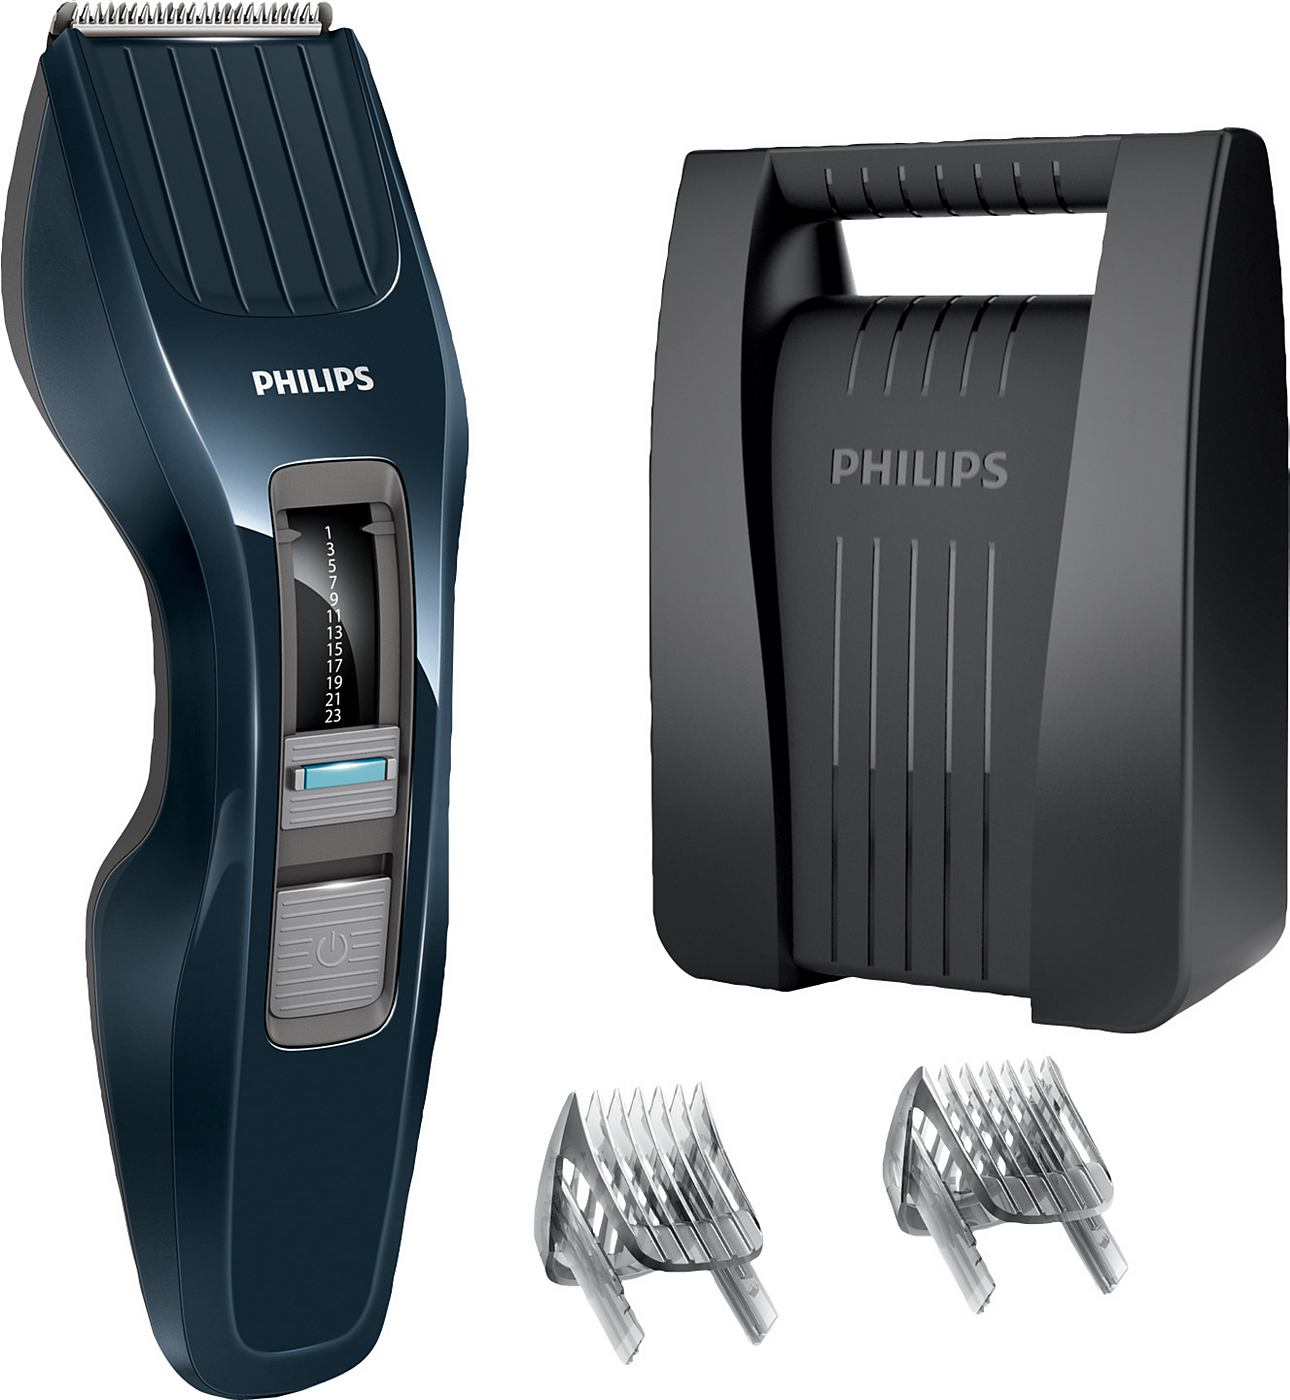 Philips Tondeuse HC3424/80 2-in-1